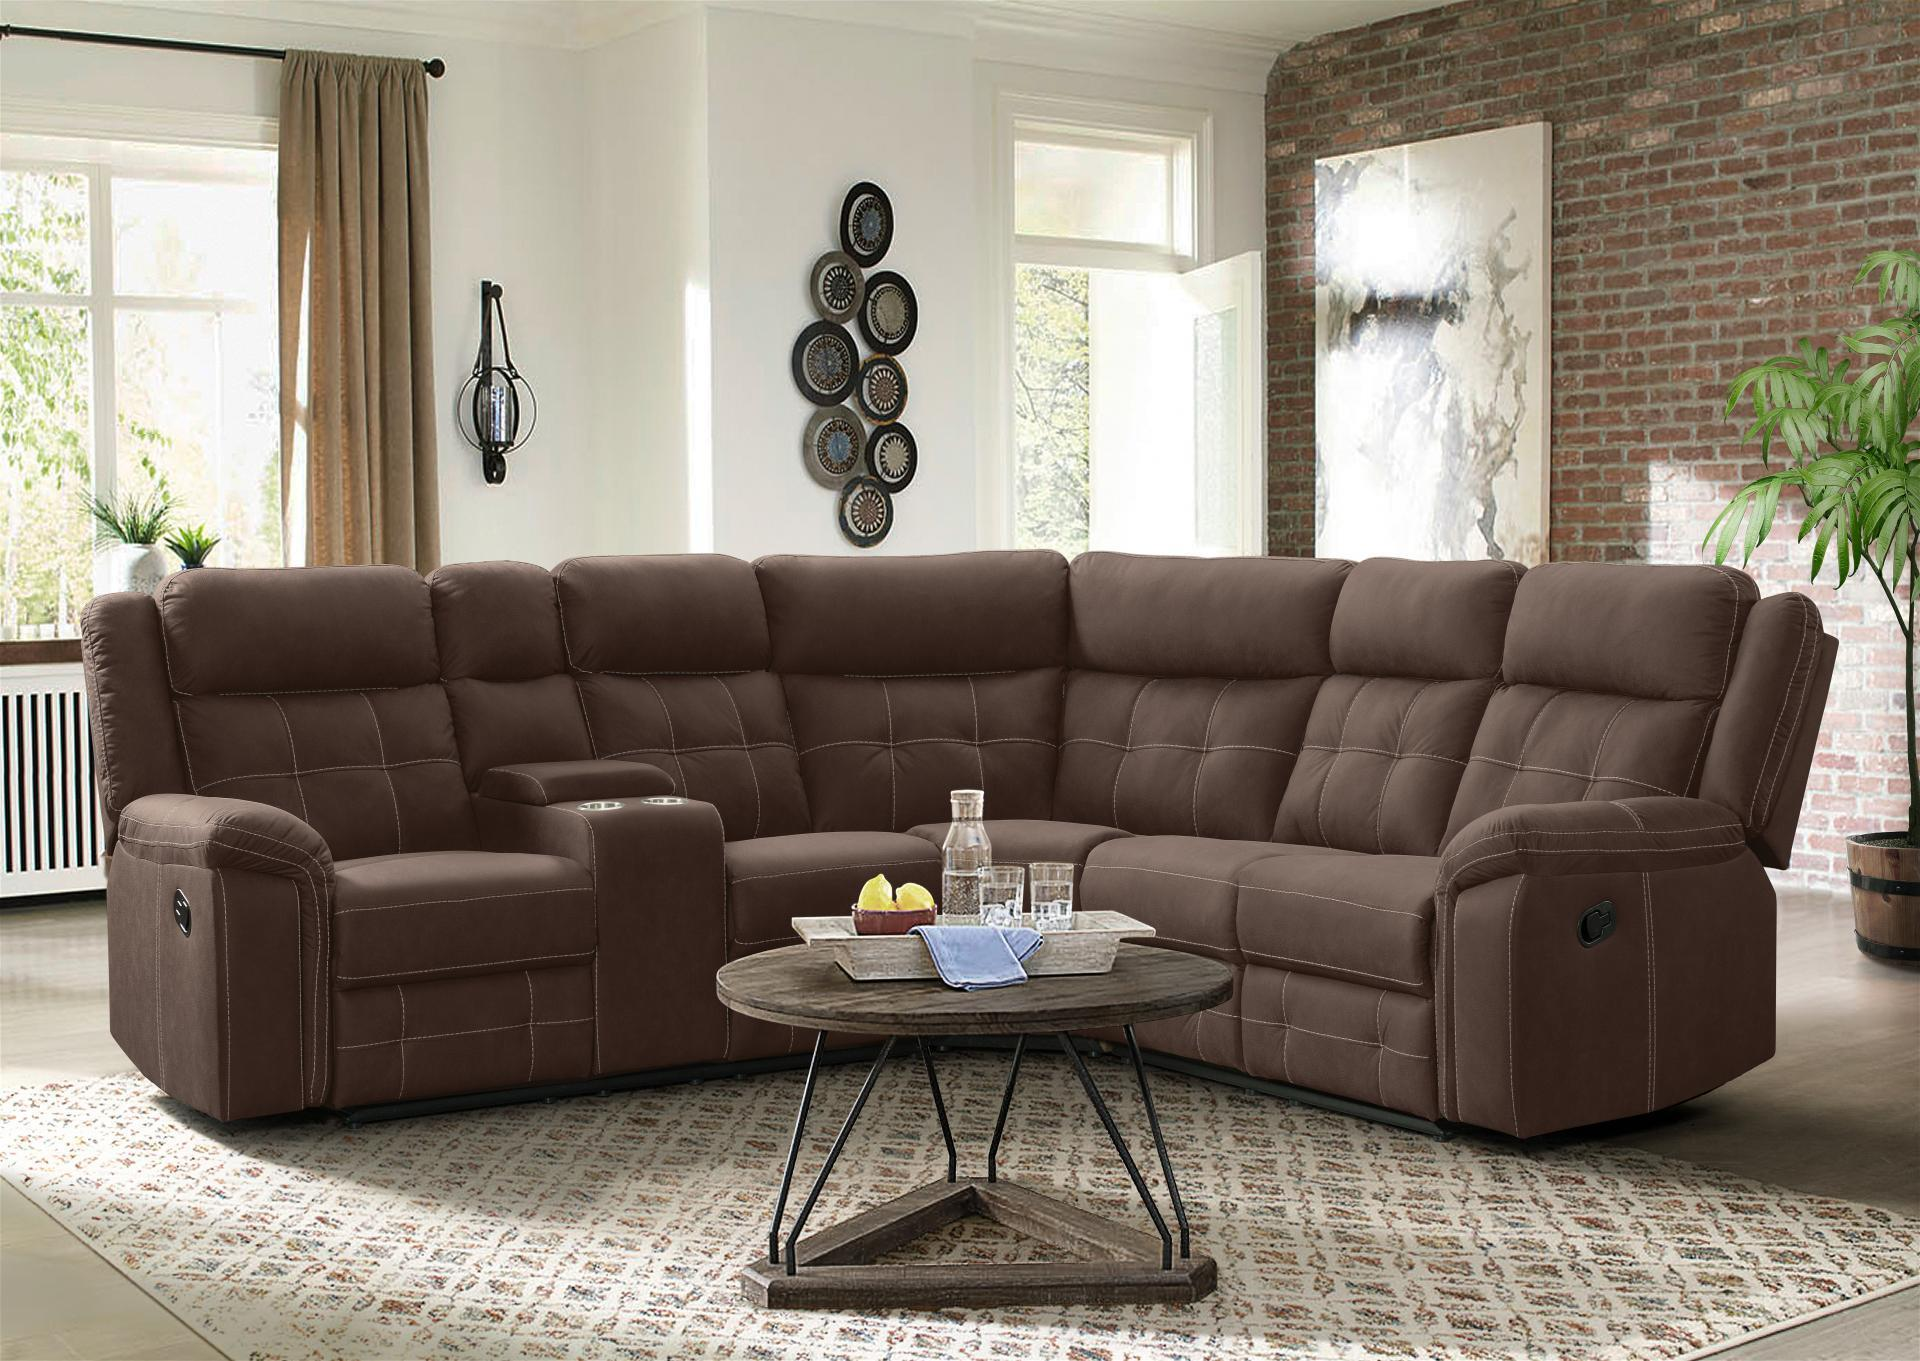 Brown 3 Piece Sectional with Storage Console and 2 recliners